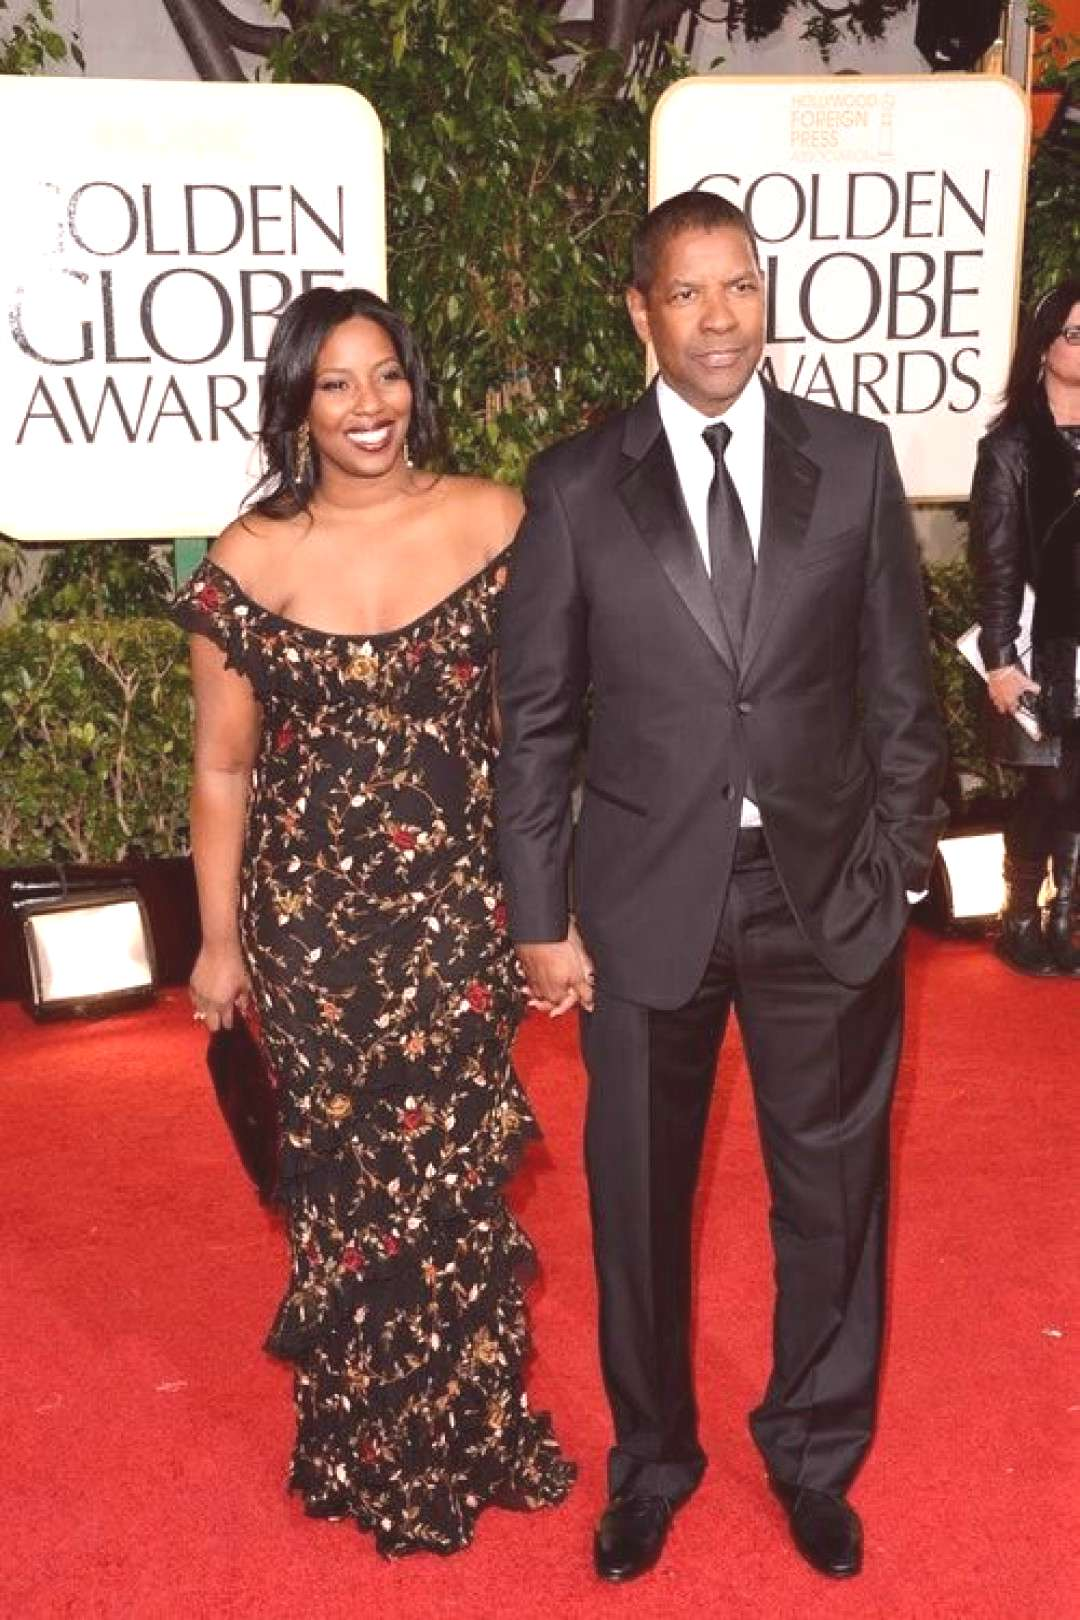 What Do Denzel Washingtons Children Do? They Followed In Their Parents Footsteps